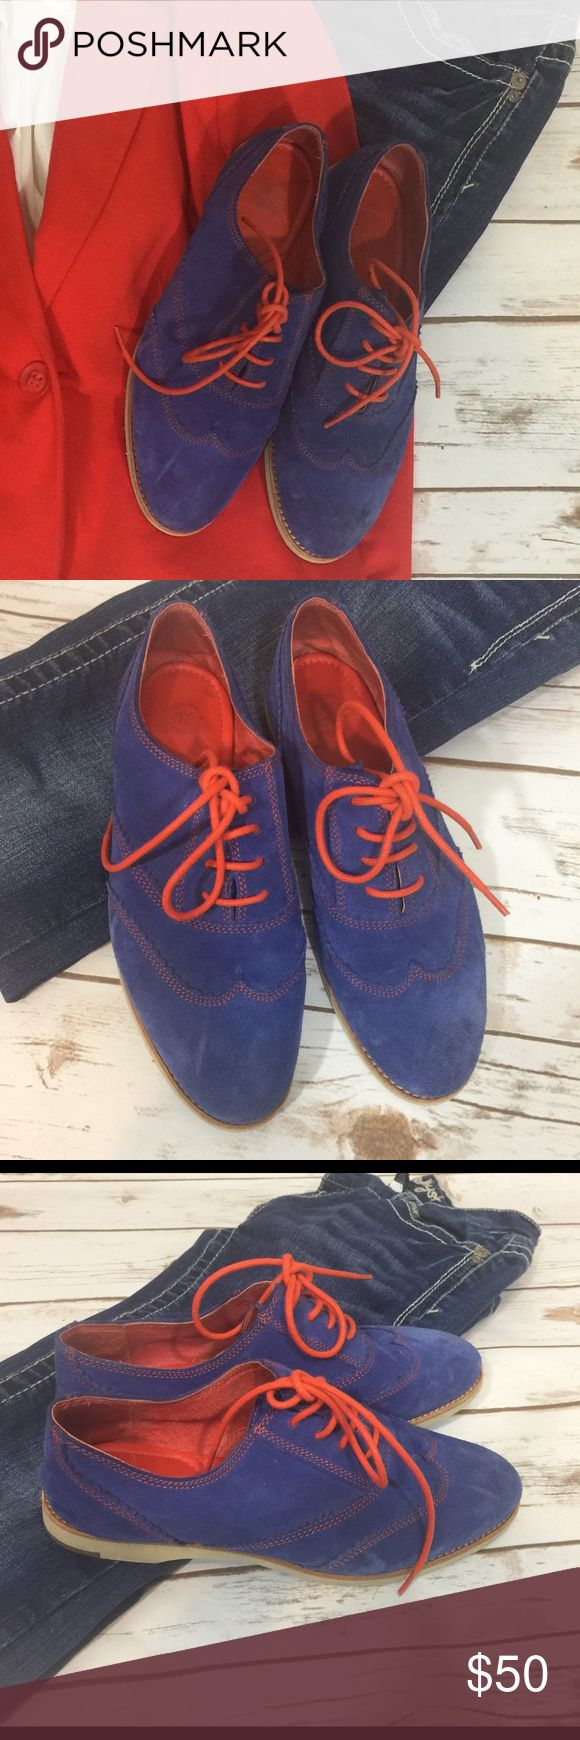 Johnston and Murphy women's oxfords Stunning blue suede shoes by Johnston and Murphy- real leather! Johnston and Murphy is a staple in men's fashion, known for their high quality shoes. These bad boys are SO comfortable, and a fun way to dress up your business casual :) Royal blue and Orange.... not for broncos haters ;) Great condition, especially if you can maintain with a suede/nubuck care kit! ❤️❤️❤️ Johnston & Murphy Shoes Flats & Loafers